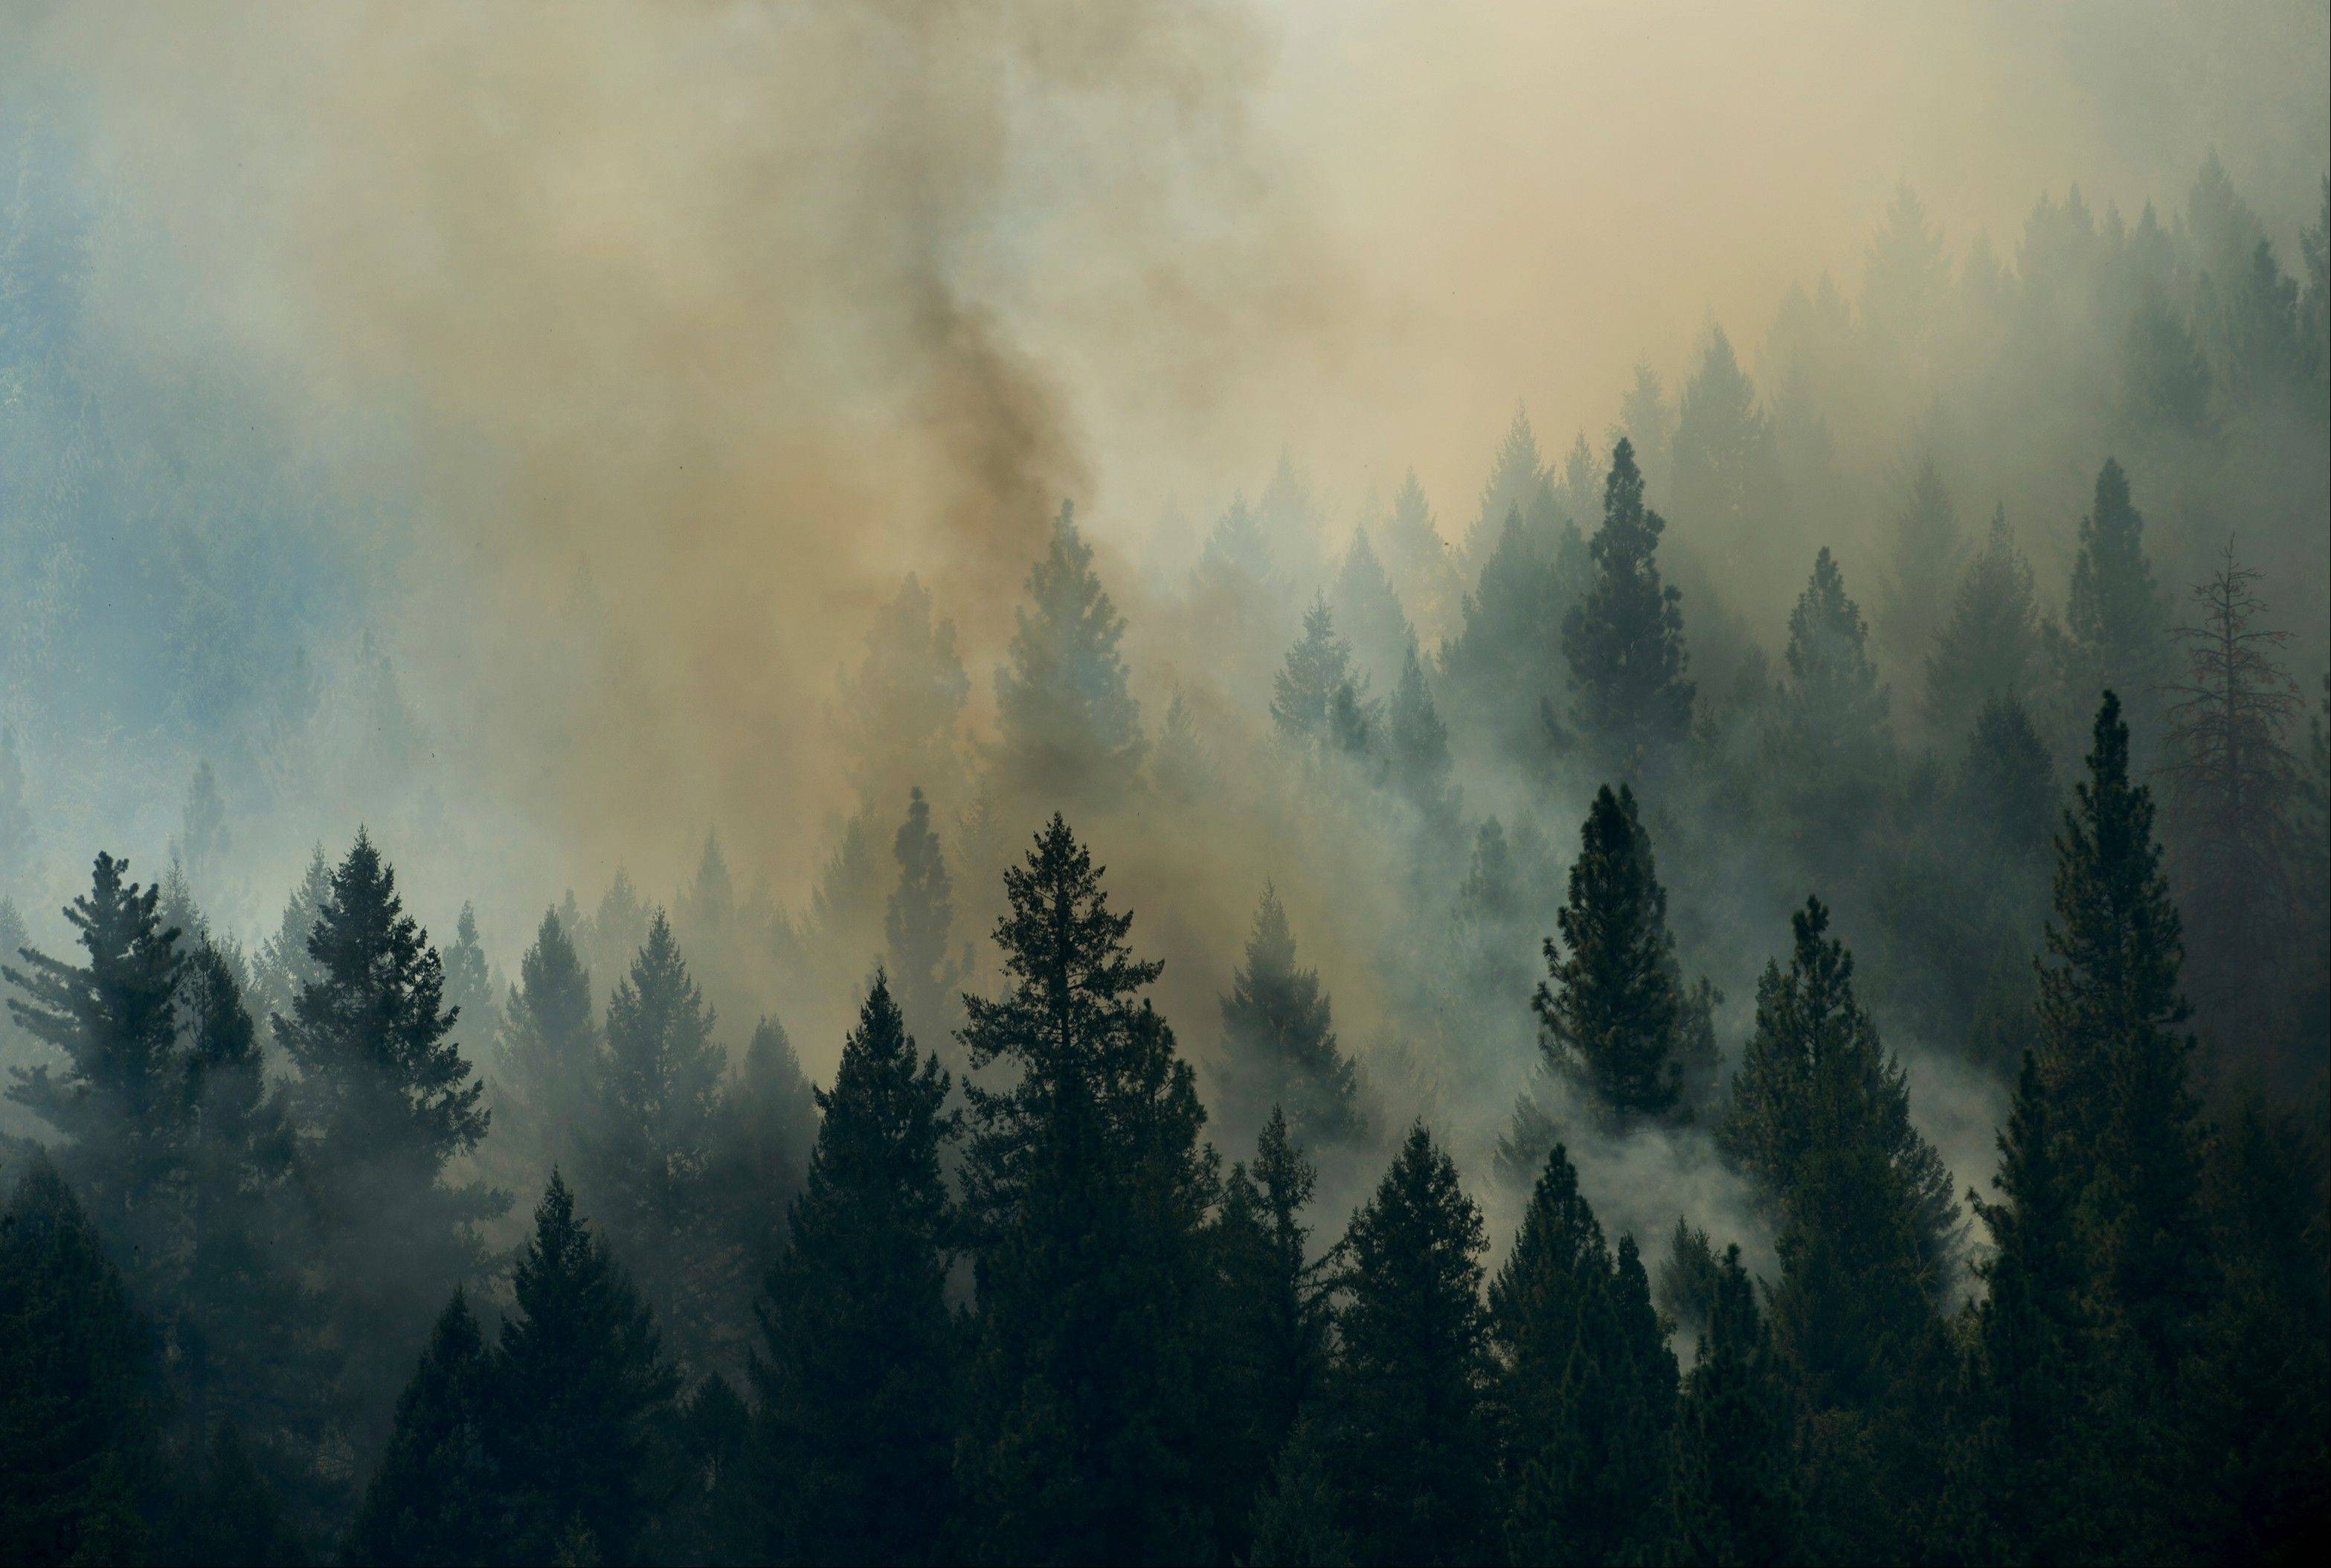 The Rim Fire burns in the Stanislaus National Forest this week, among 50 major uncontained fires burning across the western U.S.